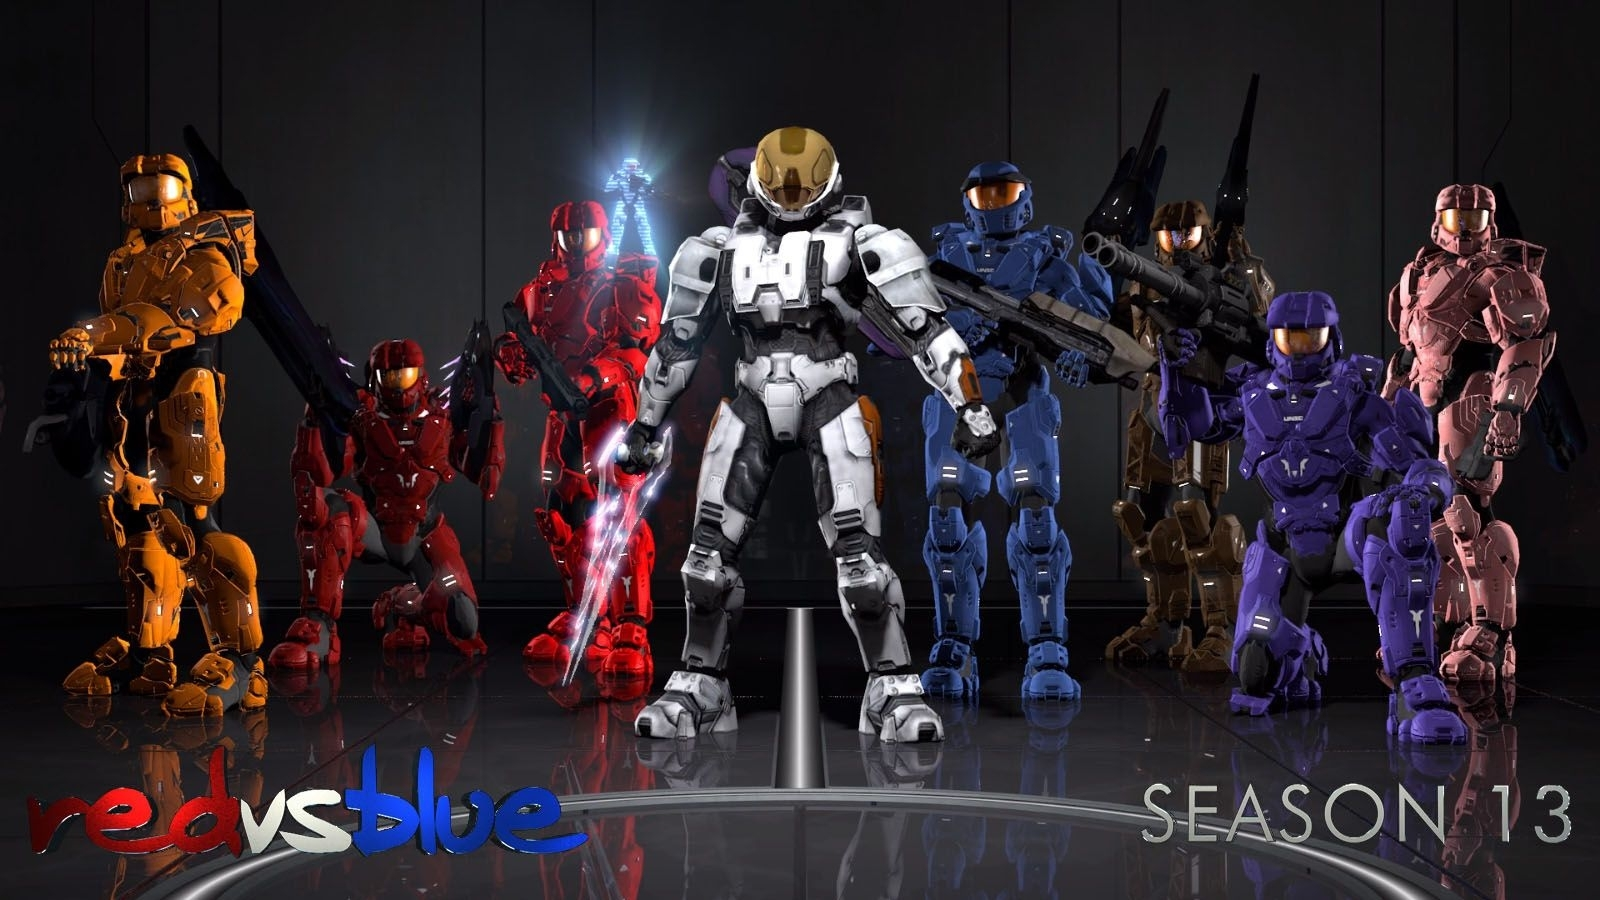 red ue cartoon wallpapers   3d wallpapers   pinterest   red vs blue